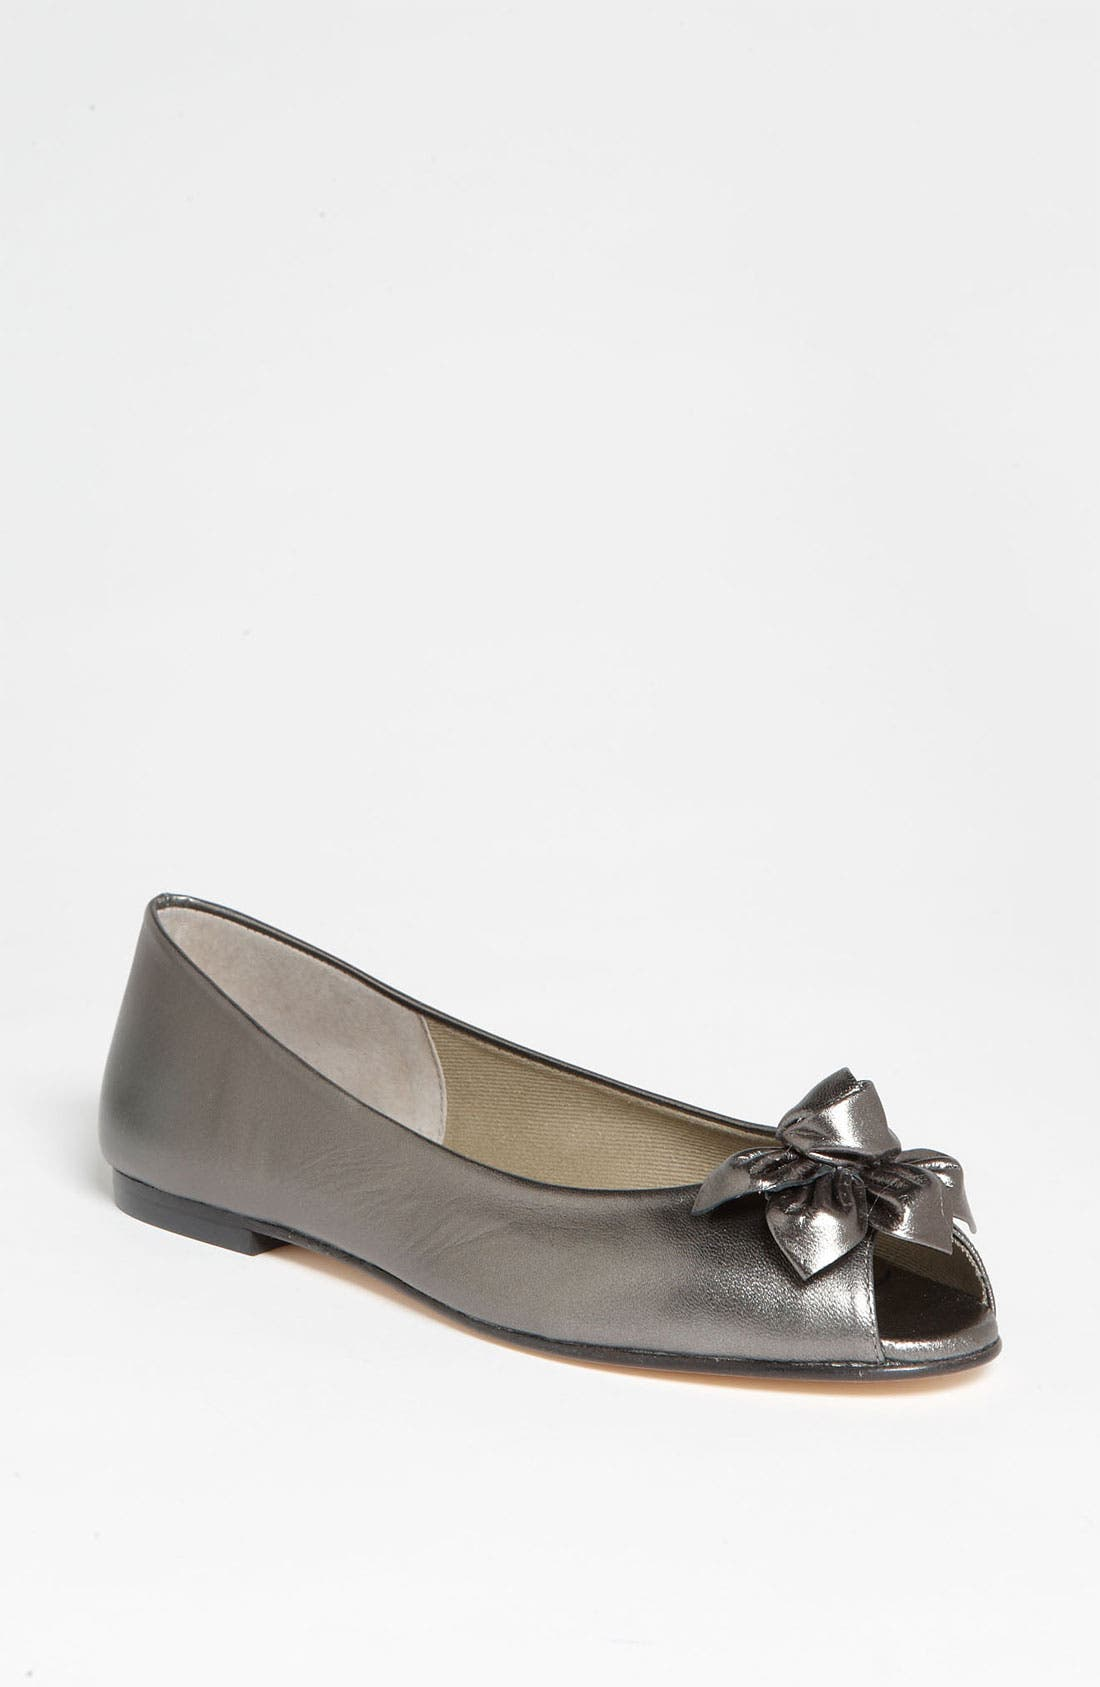 Alternate Image 1 Selected - French Sole 'Grateful' Ballet Flat